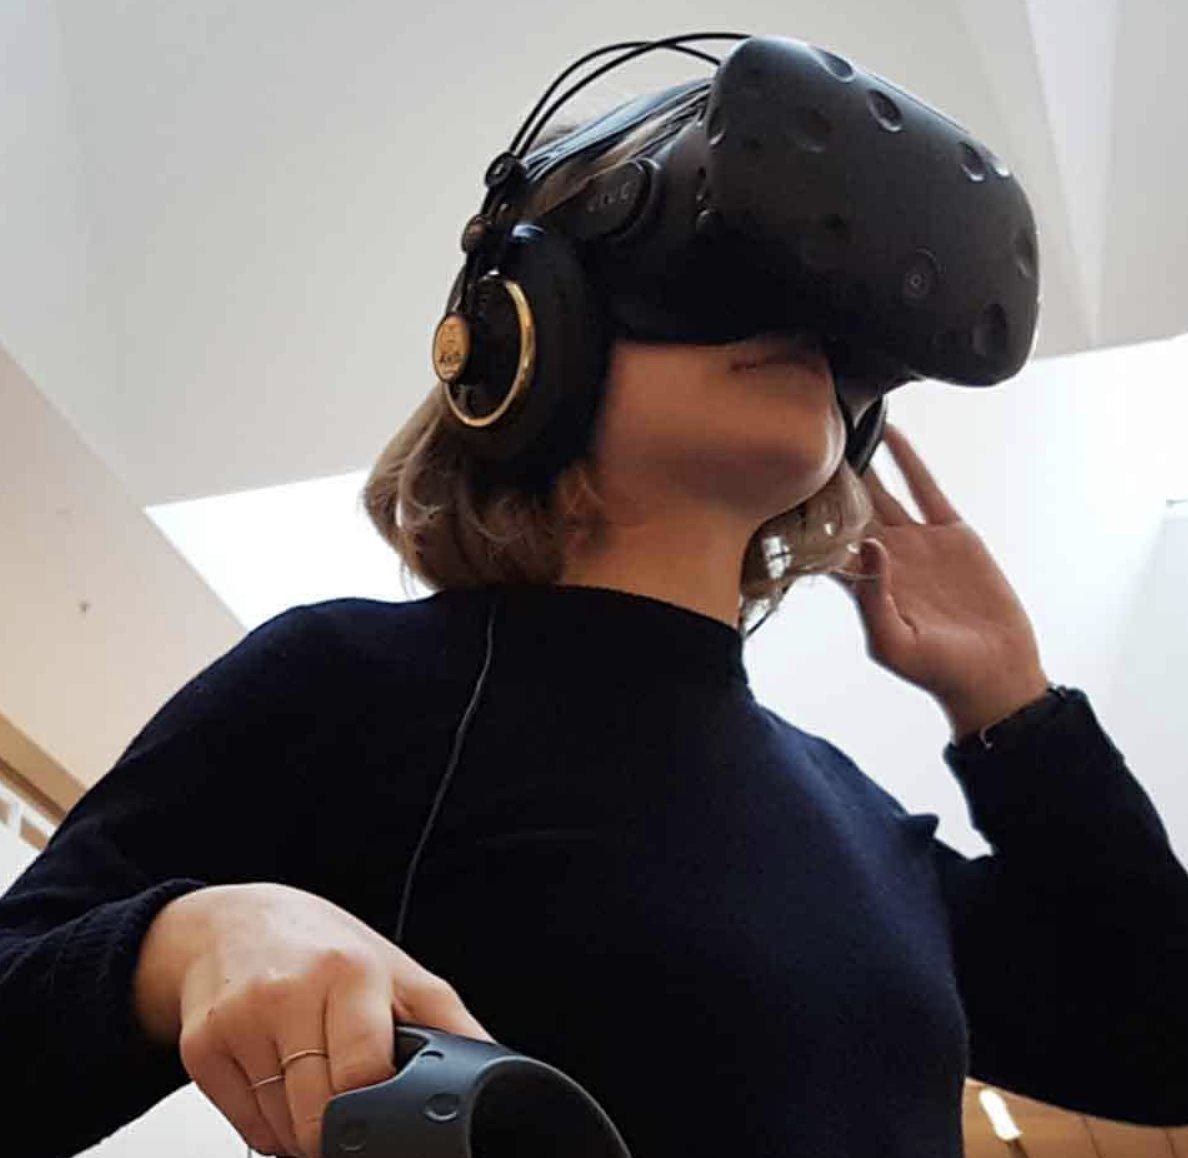 Join us and @HLArchitects on Nov. 31. for an afternoon with:   VIRTUAL SOUNDSCAPES AND IMMERSIVE AUDIO - NEW TECH TO ENGAGE THE USER  Get insights from a wide range of fields: architecture, gaming, HiFi audio, VR, and simulation.  Free of charge:   https://t.co/EuVx2qMwPD